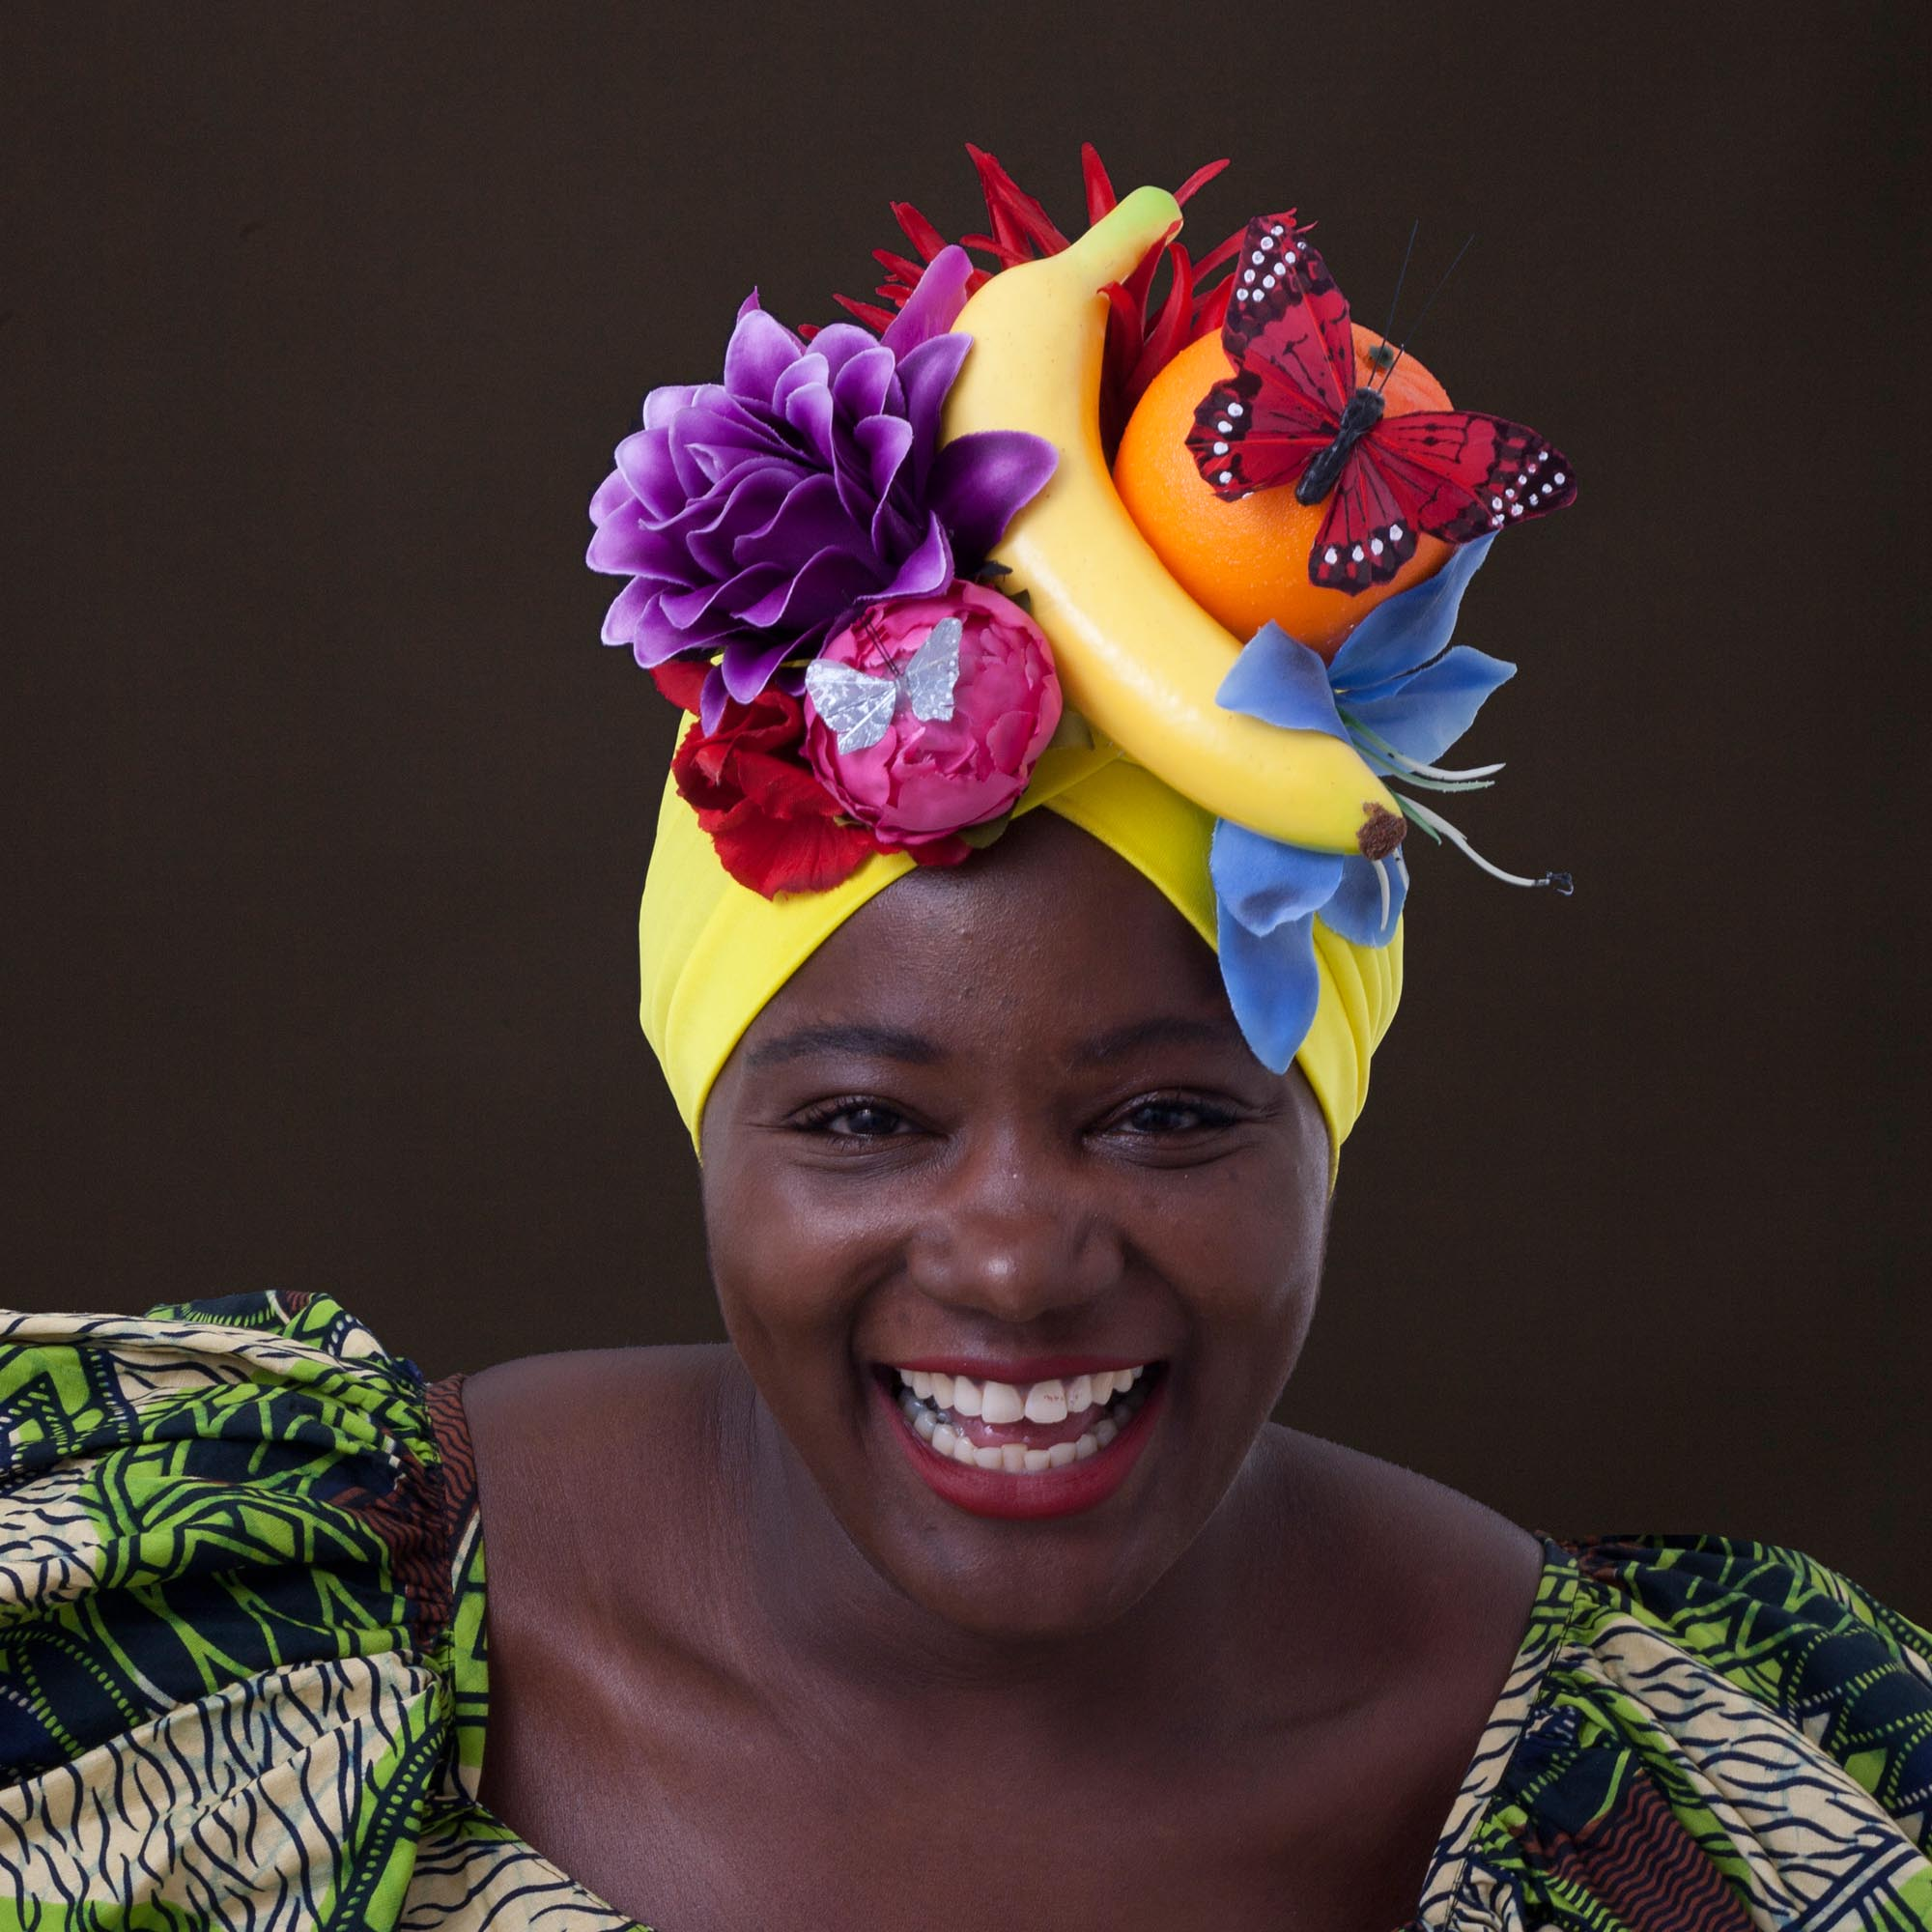 Smiling woman wearing a fruity turban